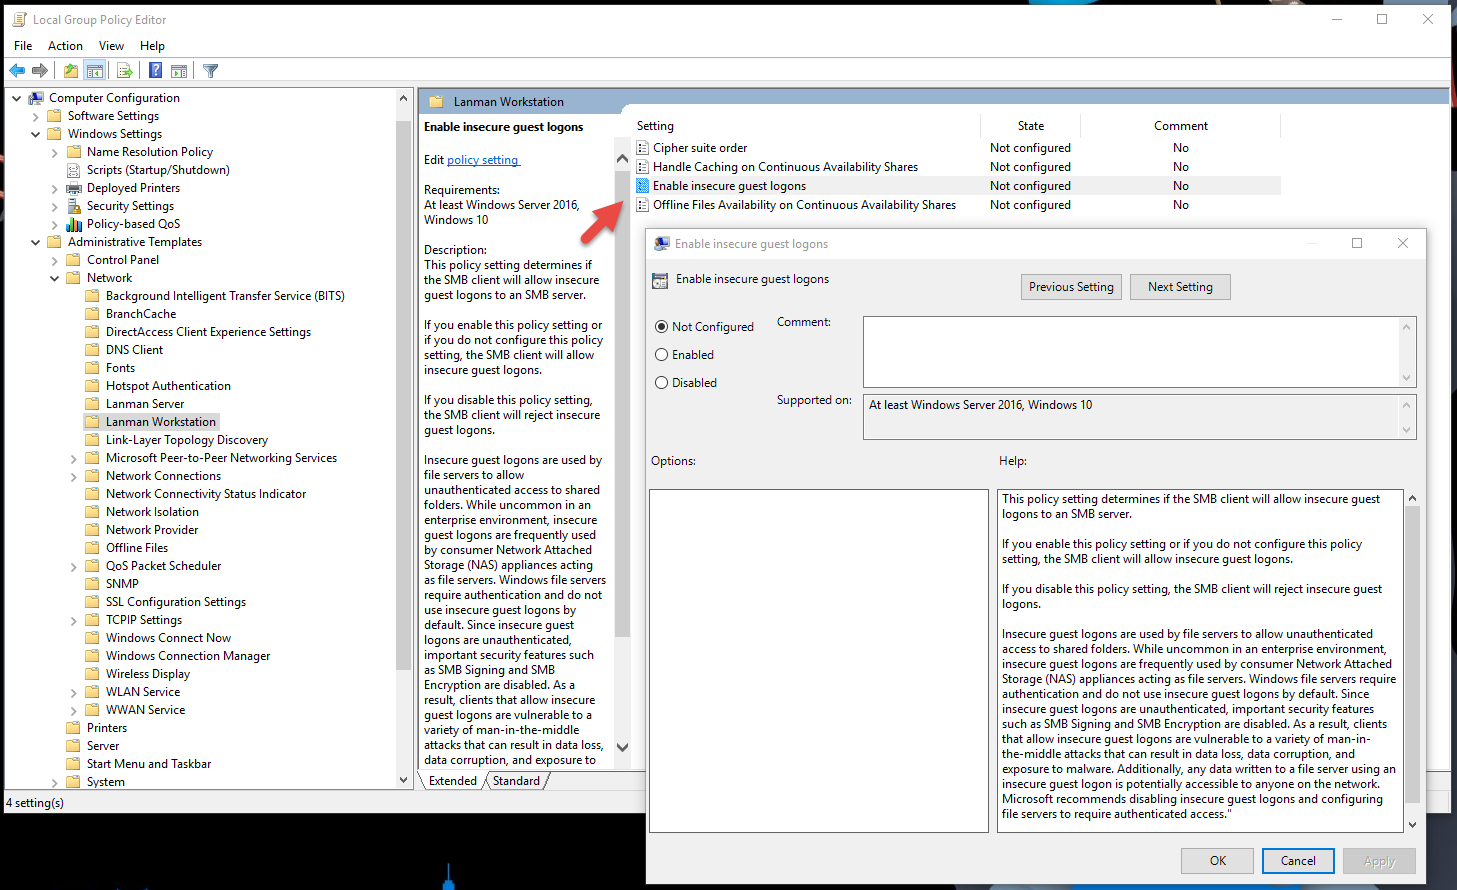 Windows 10 Group Policy Settings Spreadsheet